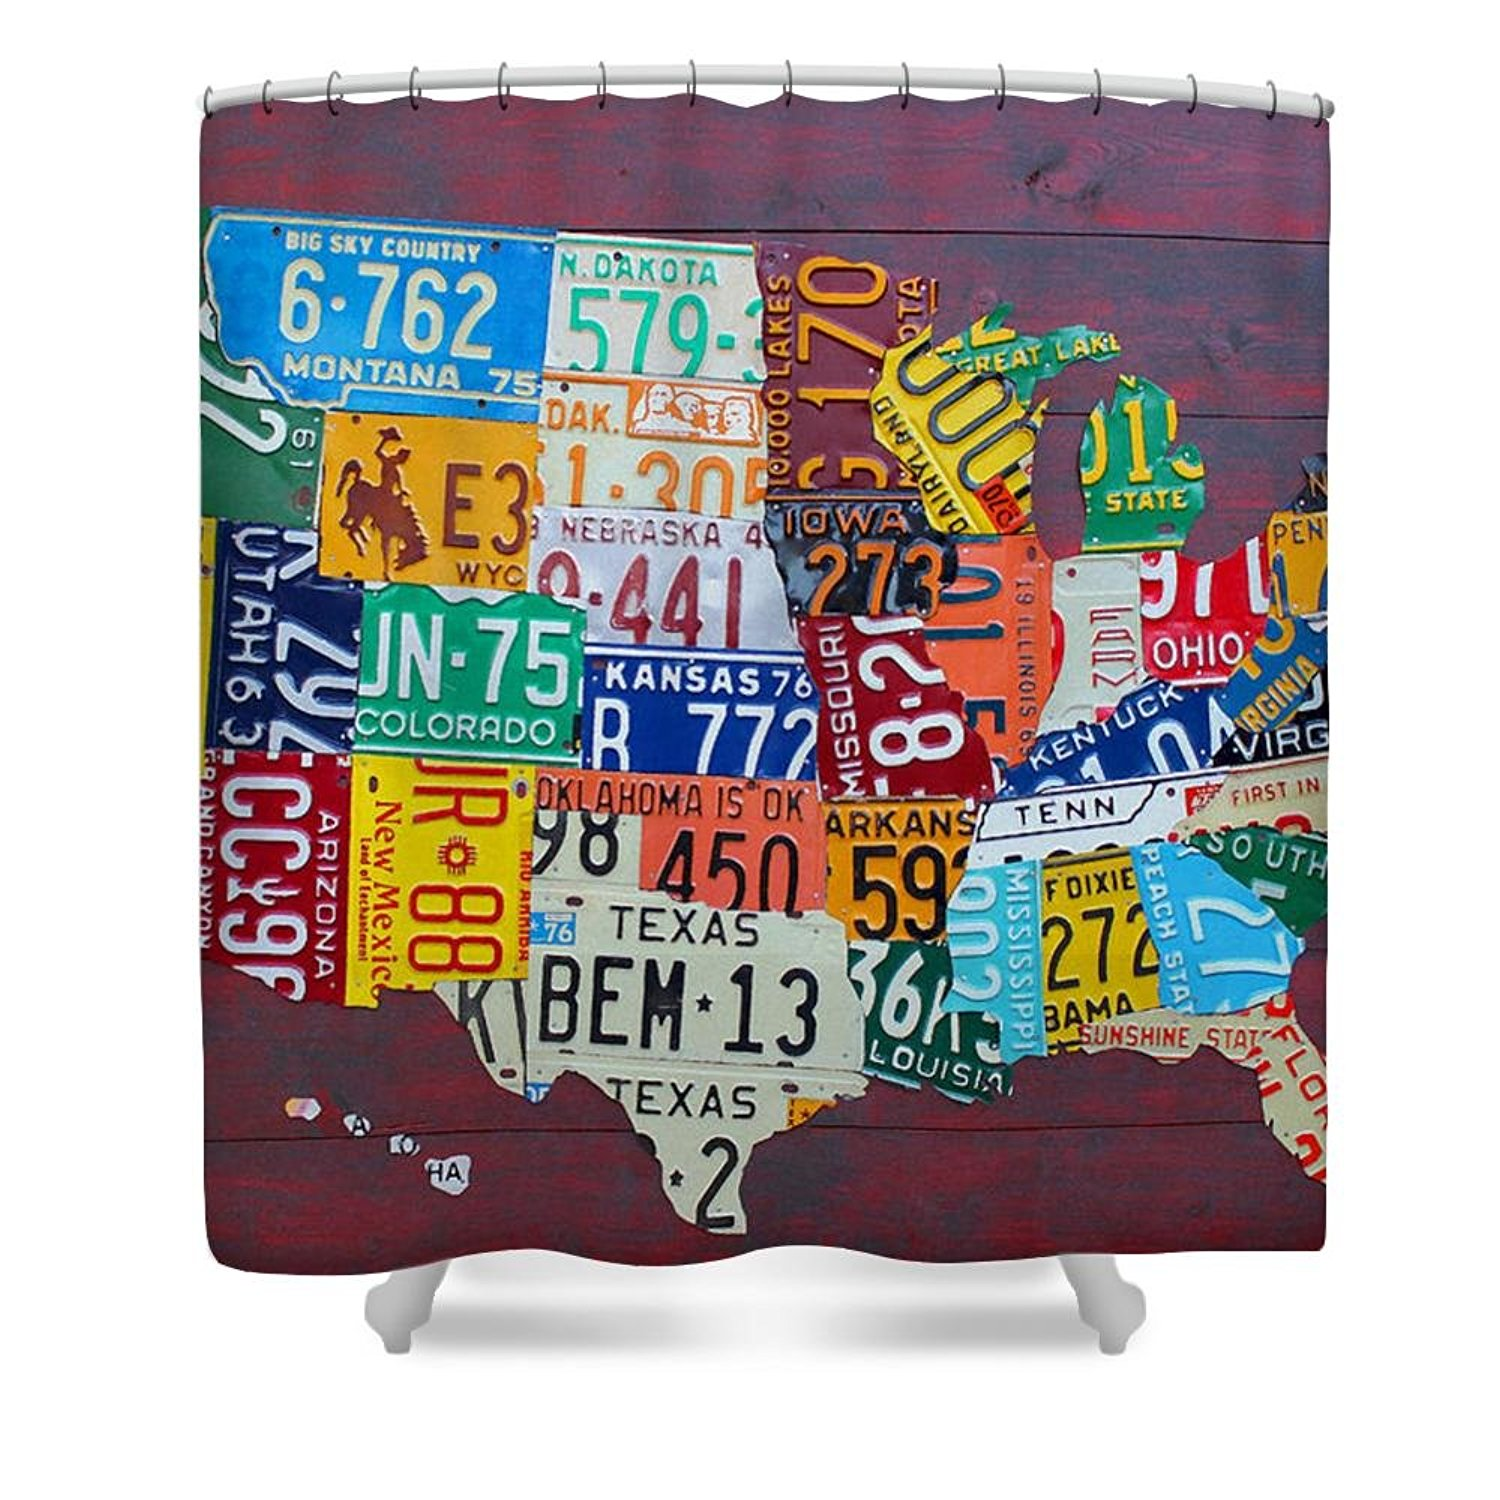 US $16.24 35% OFF|License Plate Map of the United States Waterproof on united states map high resolution, united states map tumbler, united states map pillow, united states map large wall, united states map quilt, united states map fabric, united states map rug, united states map clock, united states military armed forces, united states map art, united states map placemat, united states map food, united states map comforter, united states map with rivers, united states map wallpaper, united states map with landmarks, united states map wall mural, united states map zoom in, united states map rhode island, united states map decor,